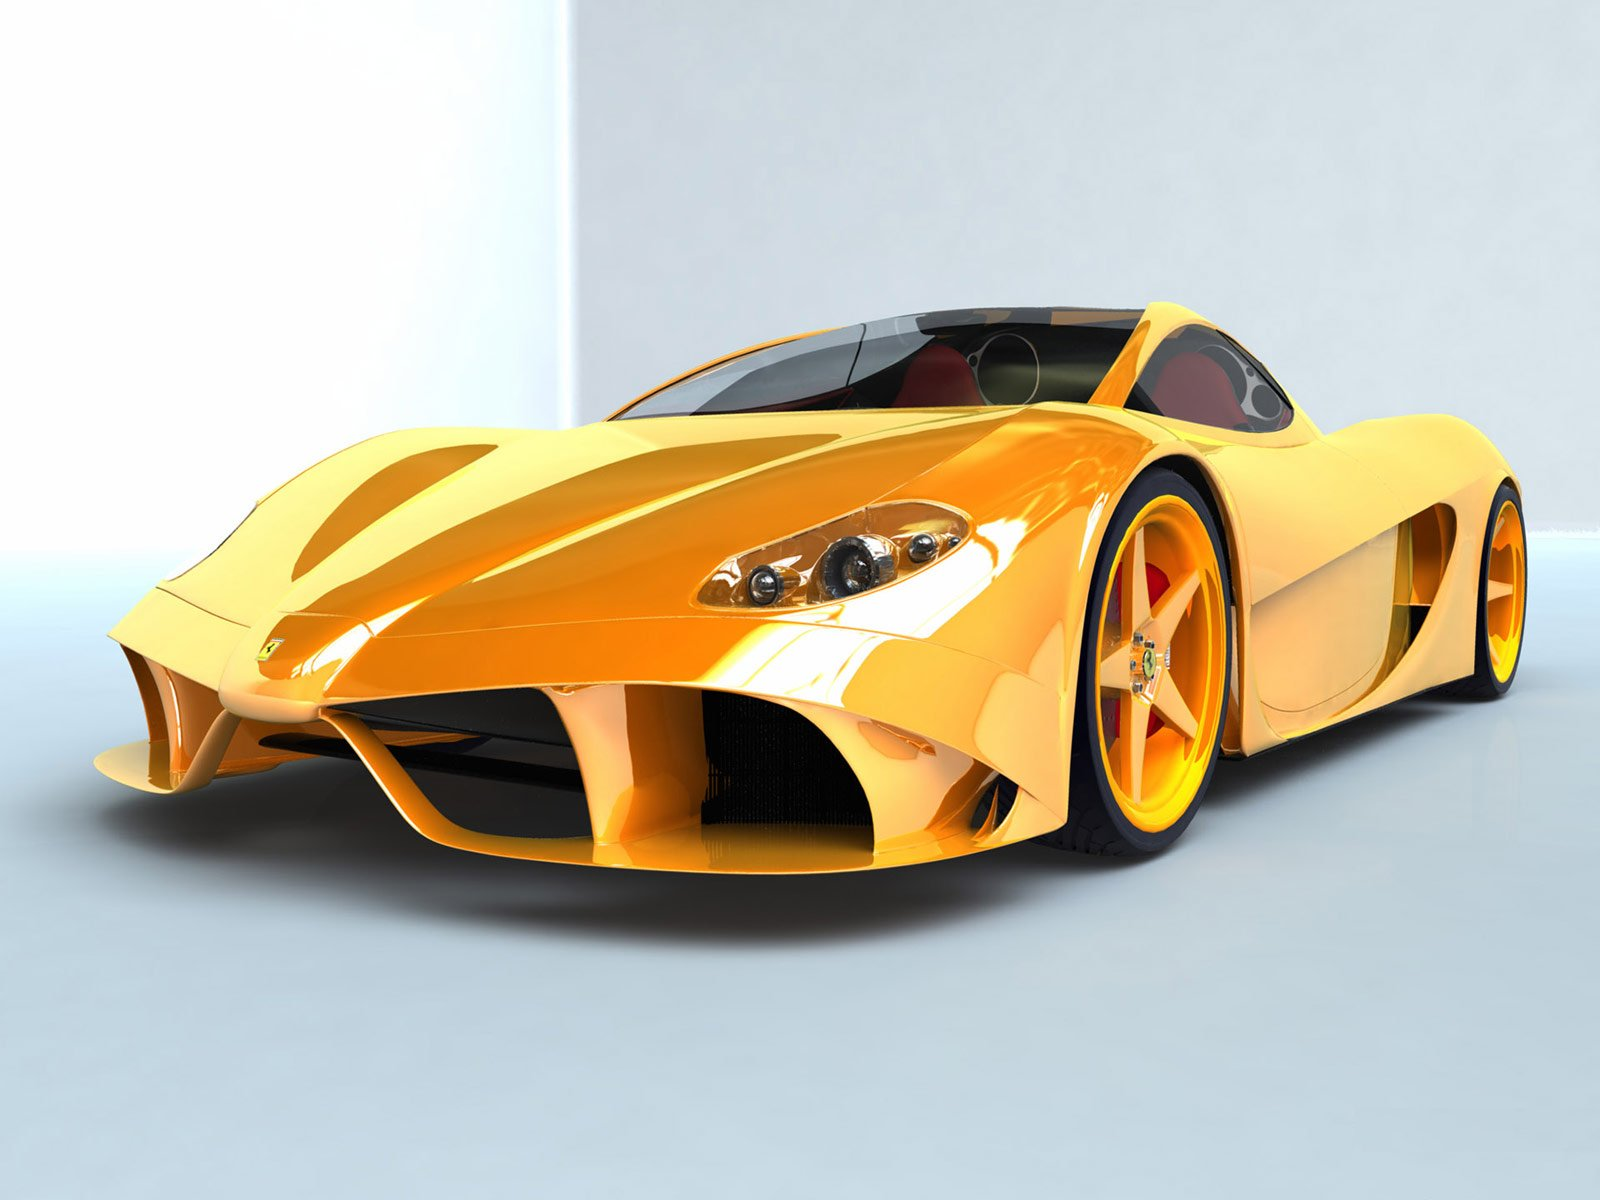 Cars News and Images: Sports cars